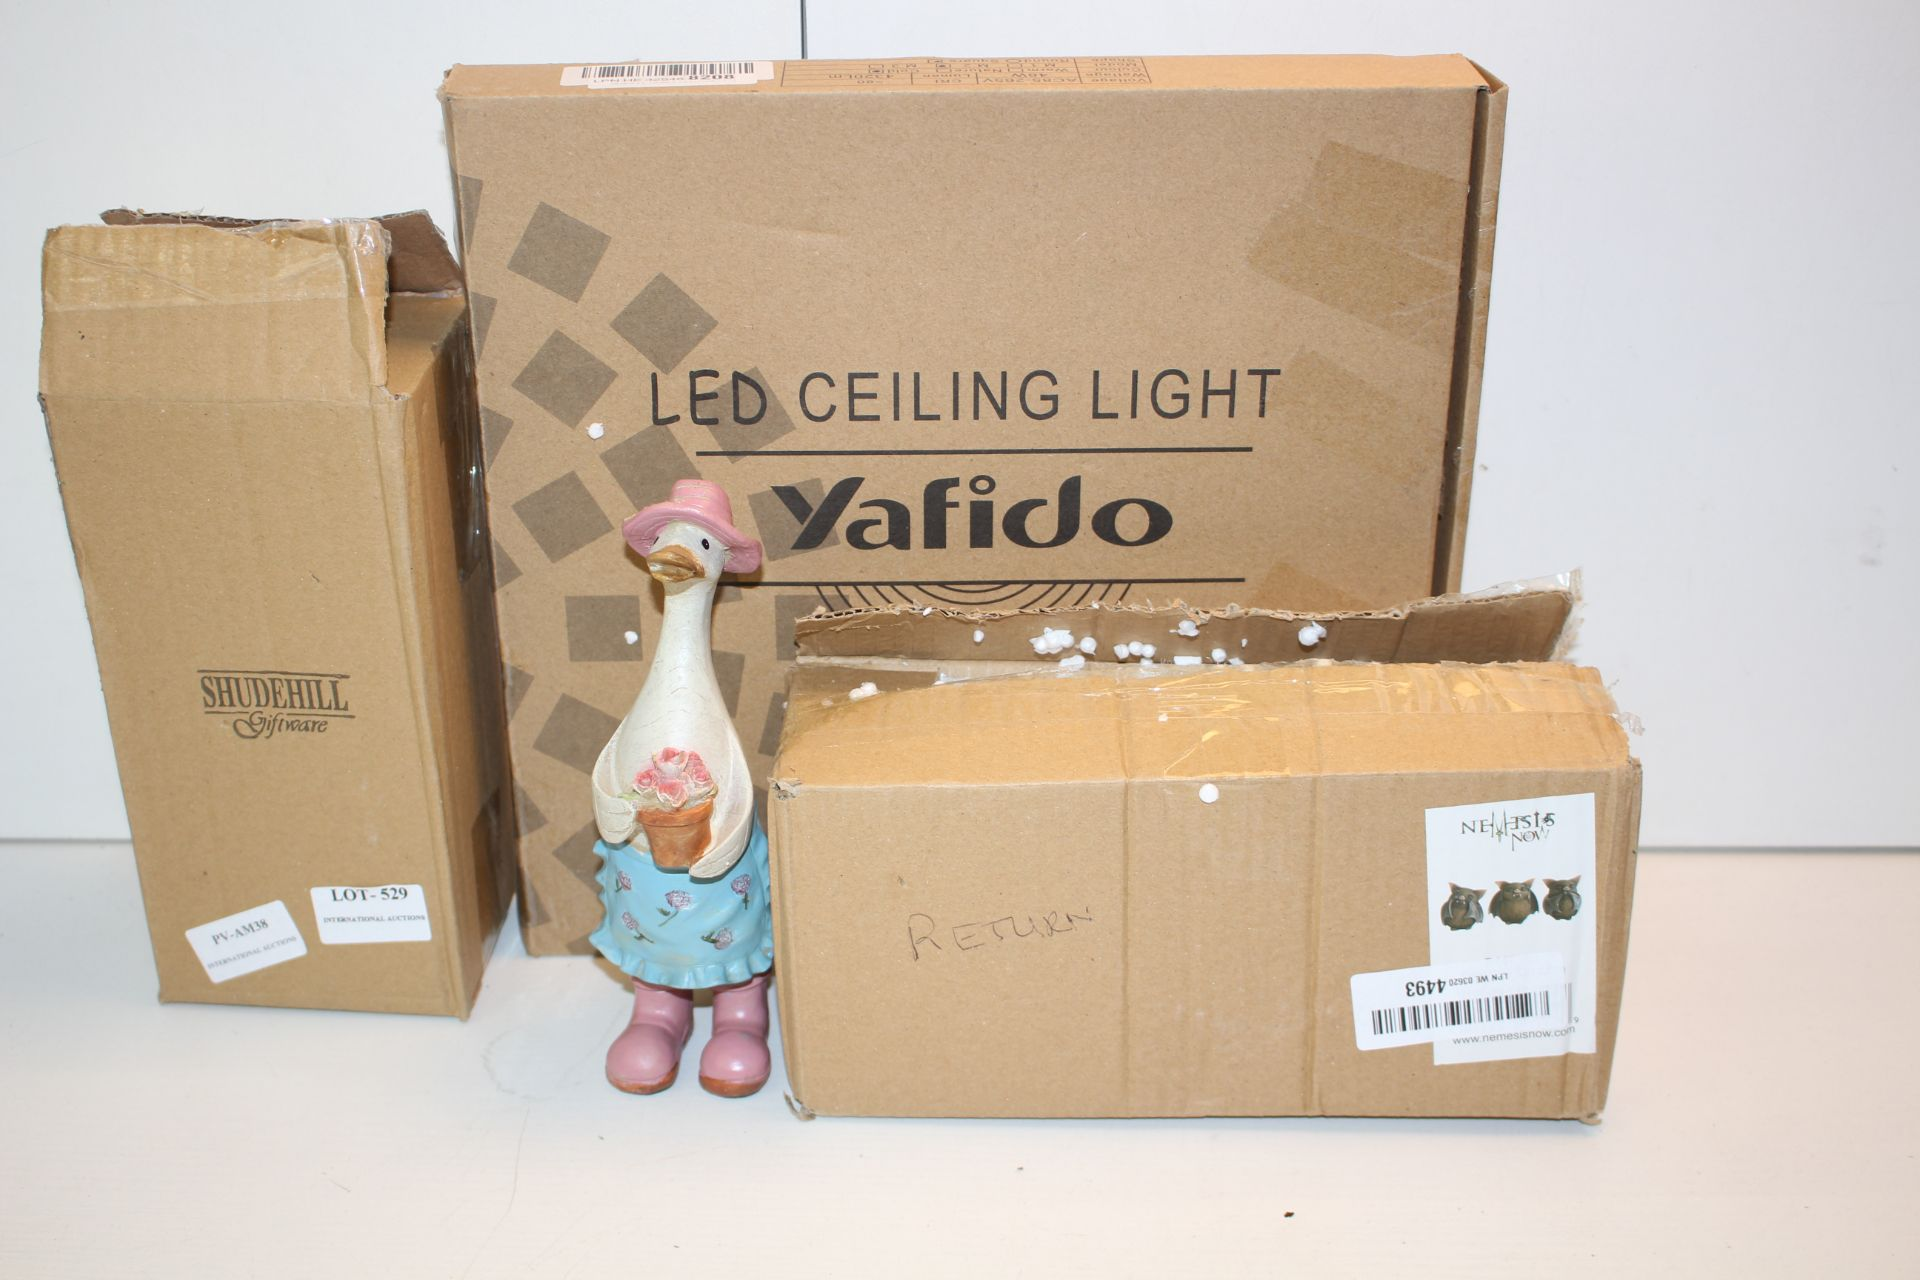 X3 ITEMS INCLUDING DECORATIVE ORNAMENTS AND LED LIGHTCondition ReportAppraisal Available on Request-